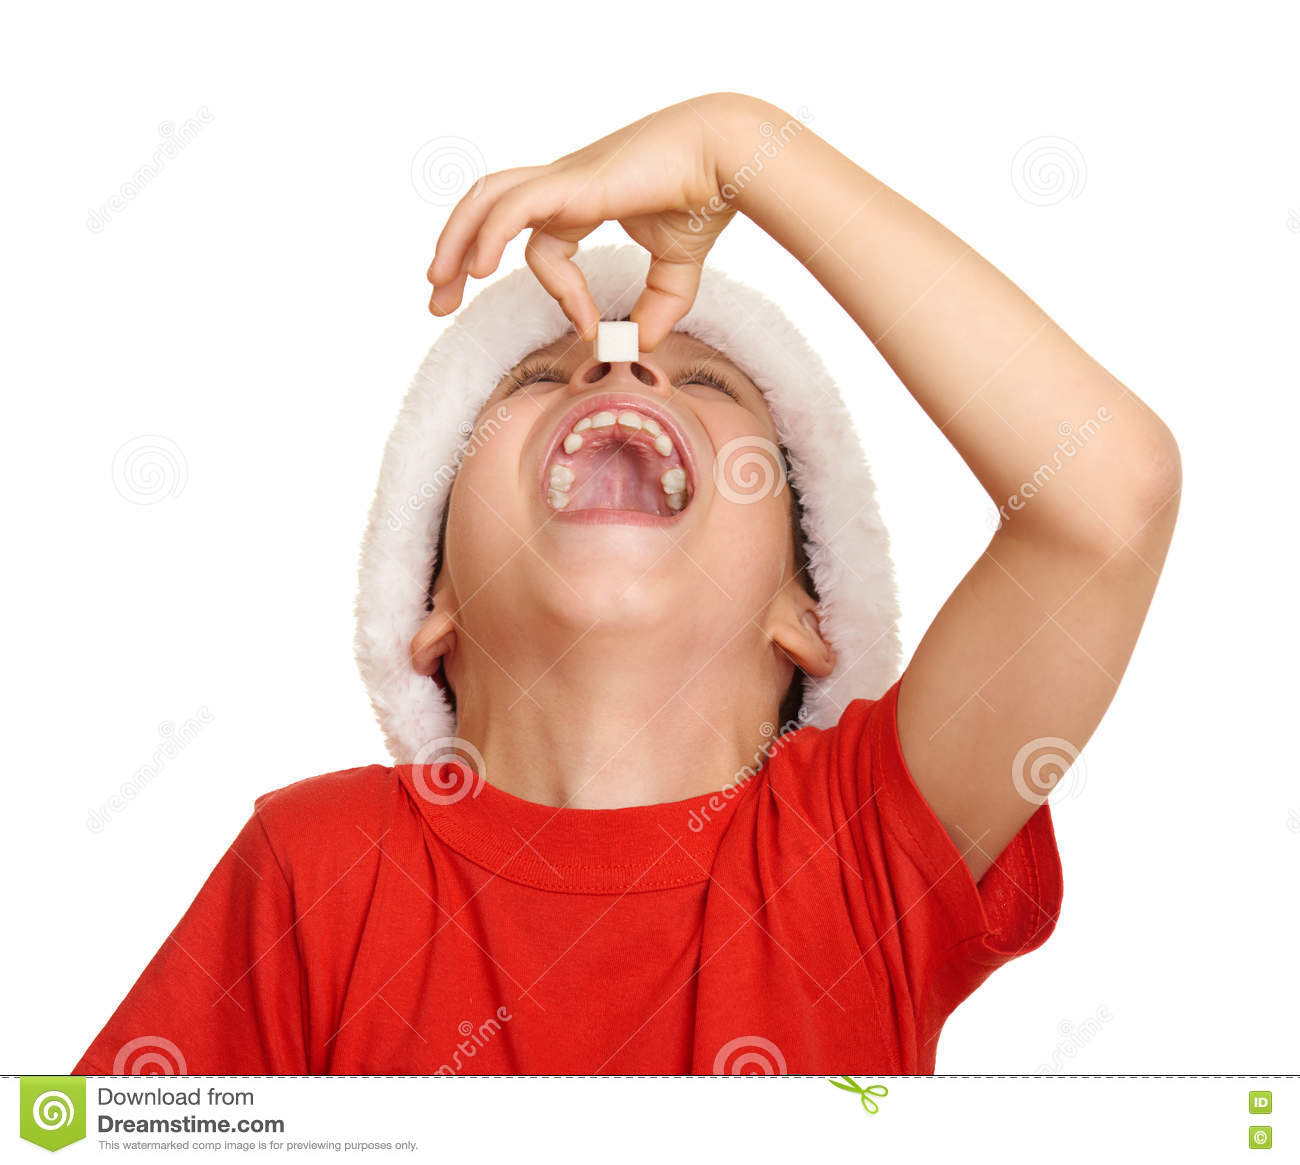 Boy child eat sugar in santa hat, having fun and emotions, winter holiday concept